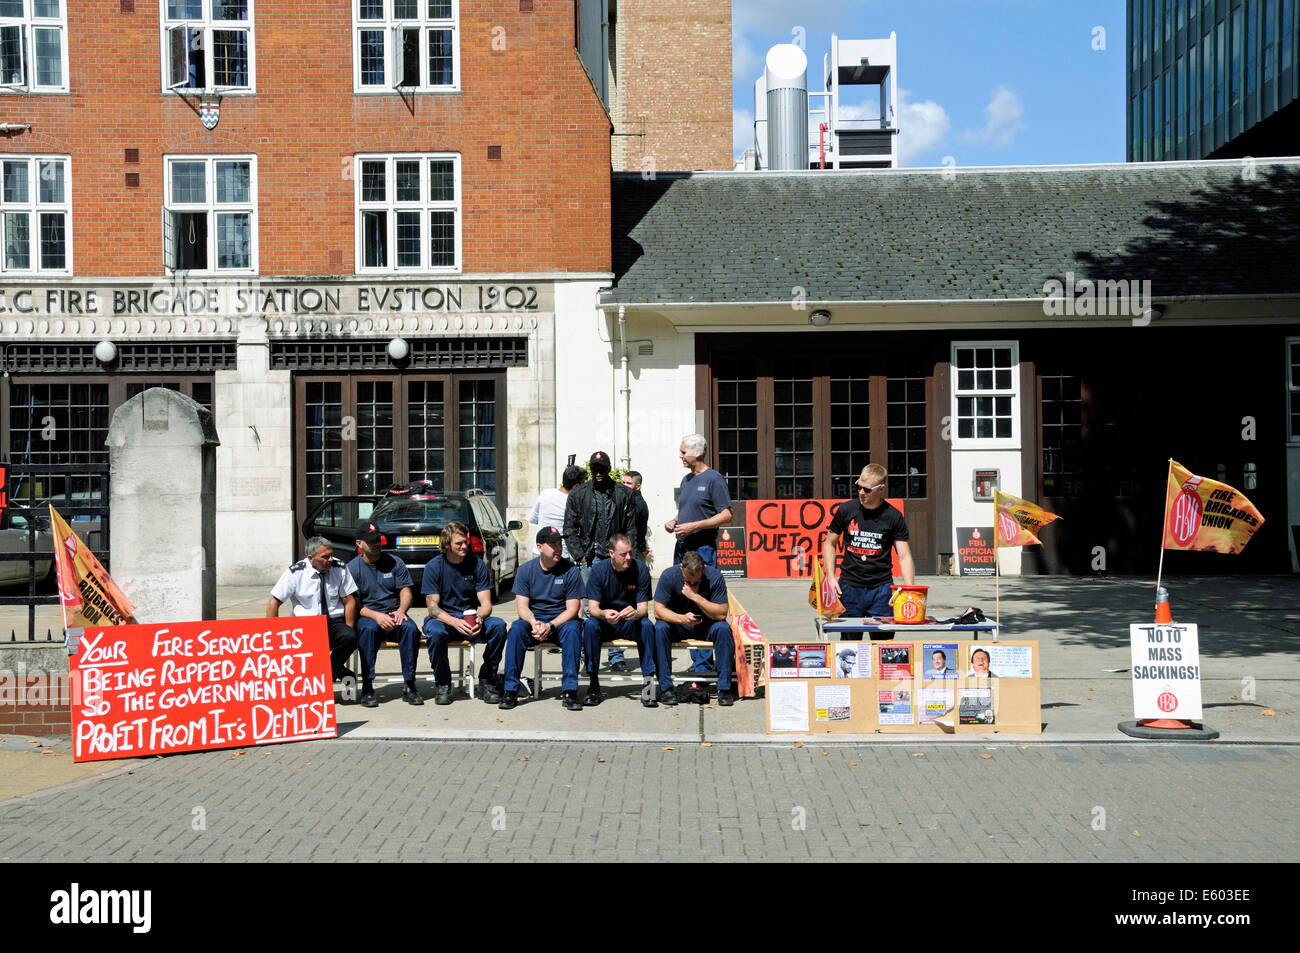 Striking firefighters on picket line outside fire station Euston Road Central London, England Britain UK Saturday 9th August 2014 Stock Photo